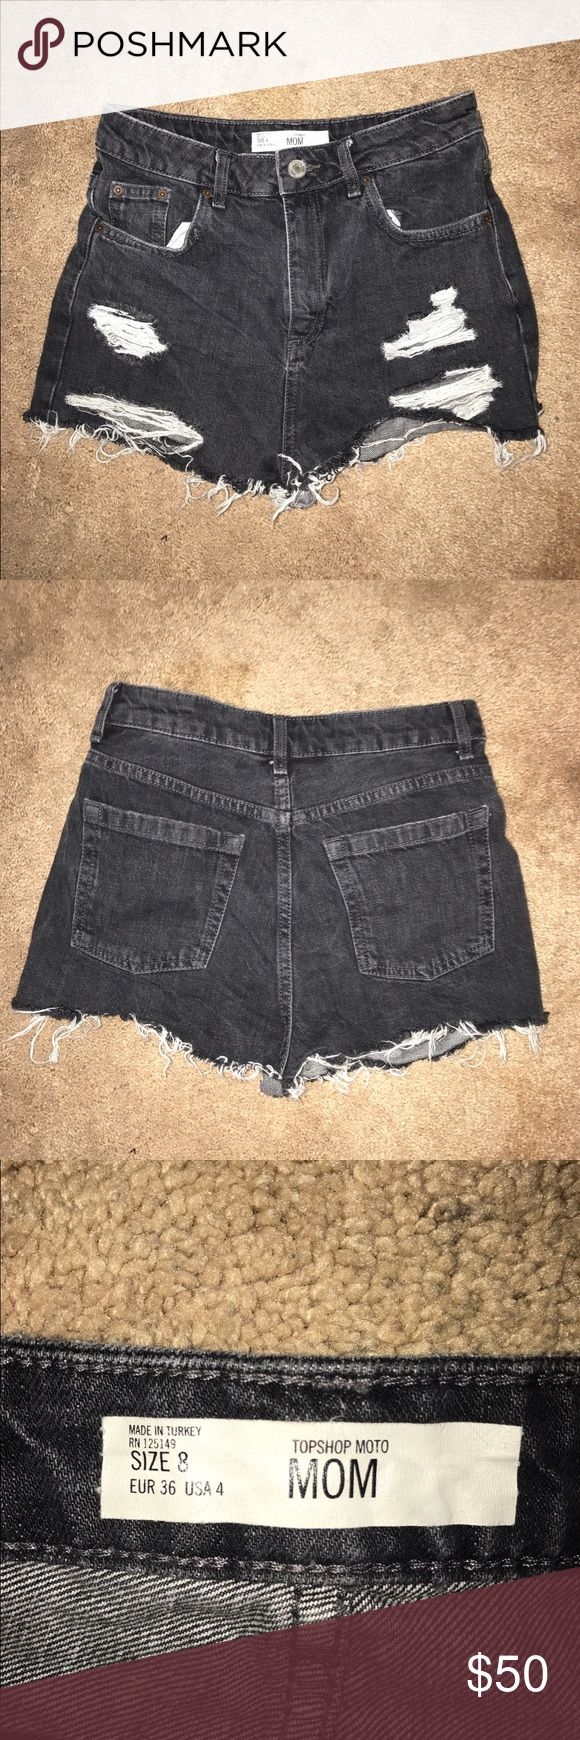 "TOPSHOP HIGH WAIST DENIM SHORTS TOPSHOP HIGH WAIST DENIM SHORTS in a washed black color with ripped detailing. These are a ""cut off"" style and are in EXCELLENT CONDITION! WORN ONCE, WE'RE TOO SMALL ON ME!! They said a 4, but they are actually smaller. No rips, tears, or holes located anywhere on the shorts! I included a picture showing that it is actually around a size 25. The inseam is 2 inches and the rise is 11. HAPPY SHOPPING! ***WILL SELL FOR LESS ON Ⓜ️ERCARI*** Topshop Shorts Jean…"